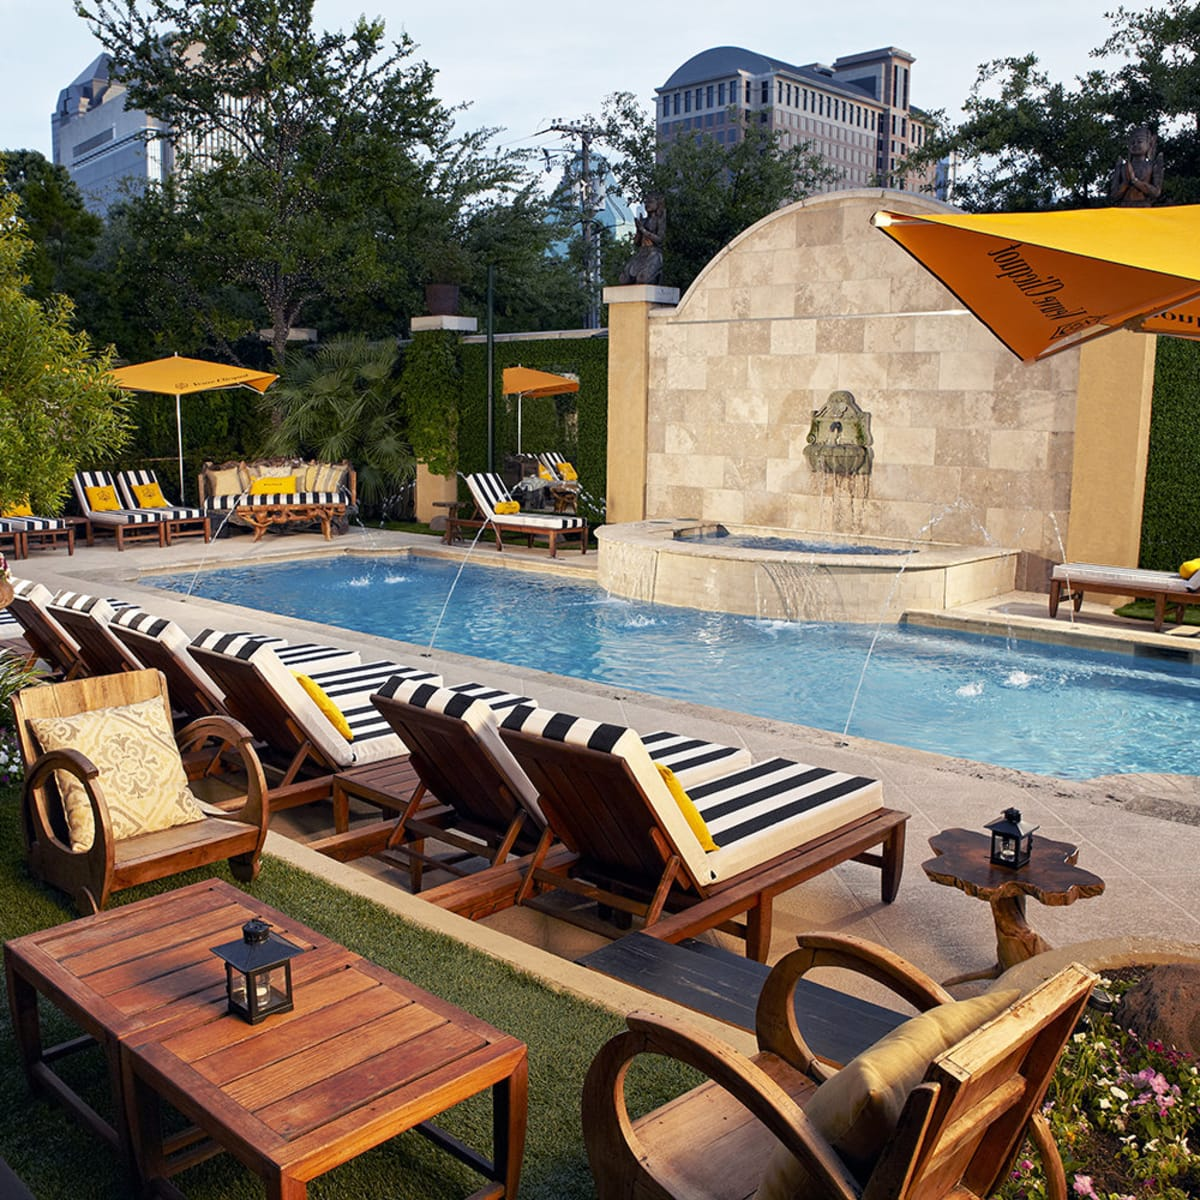 Hotel ZaZa Urban Oasis in Dallas